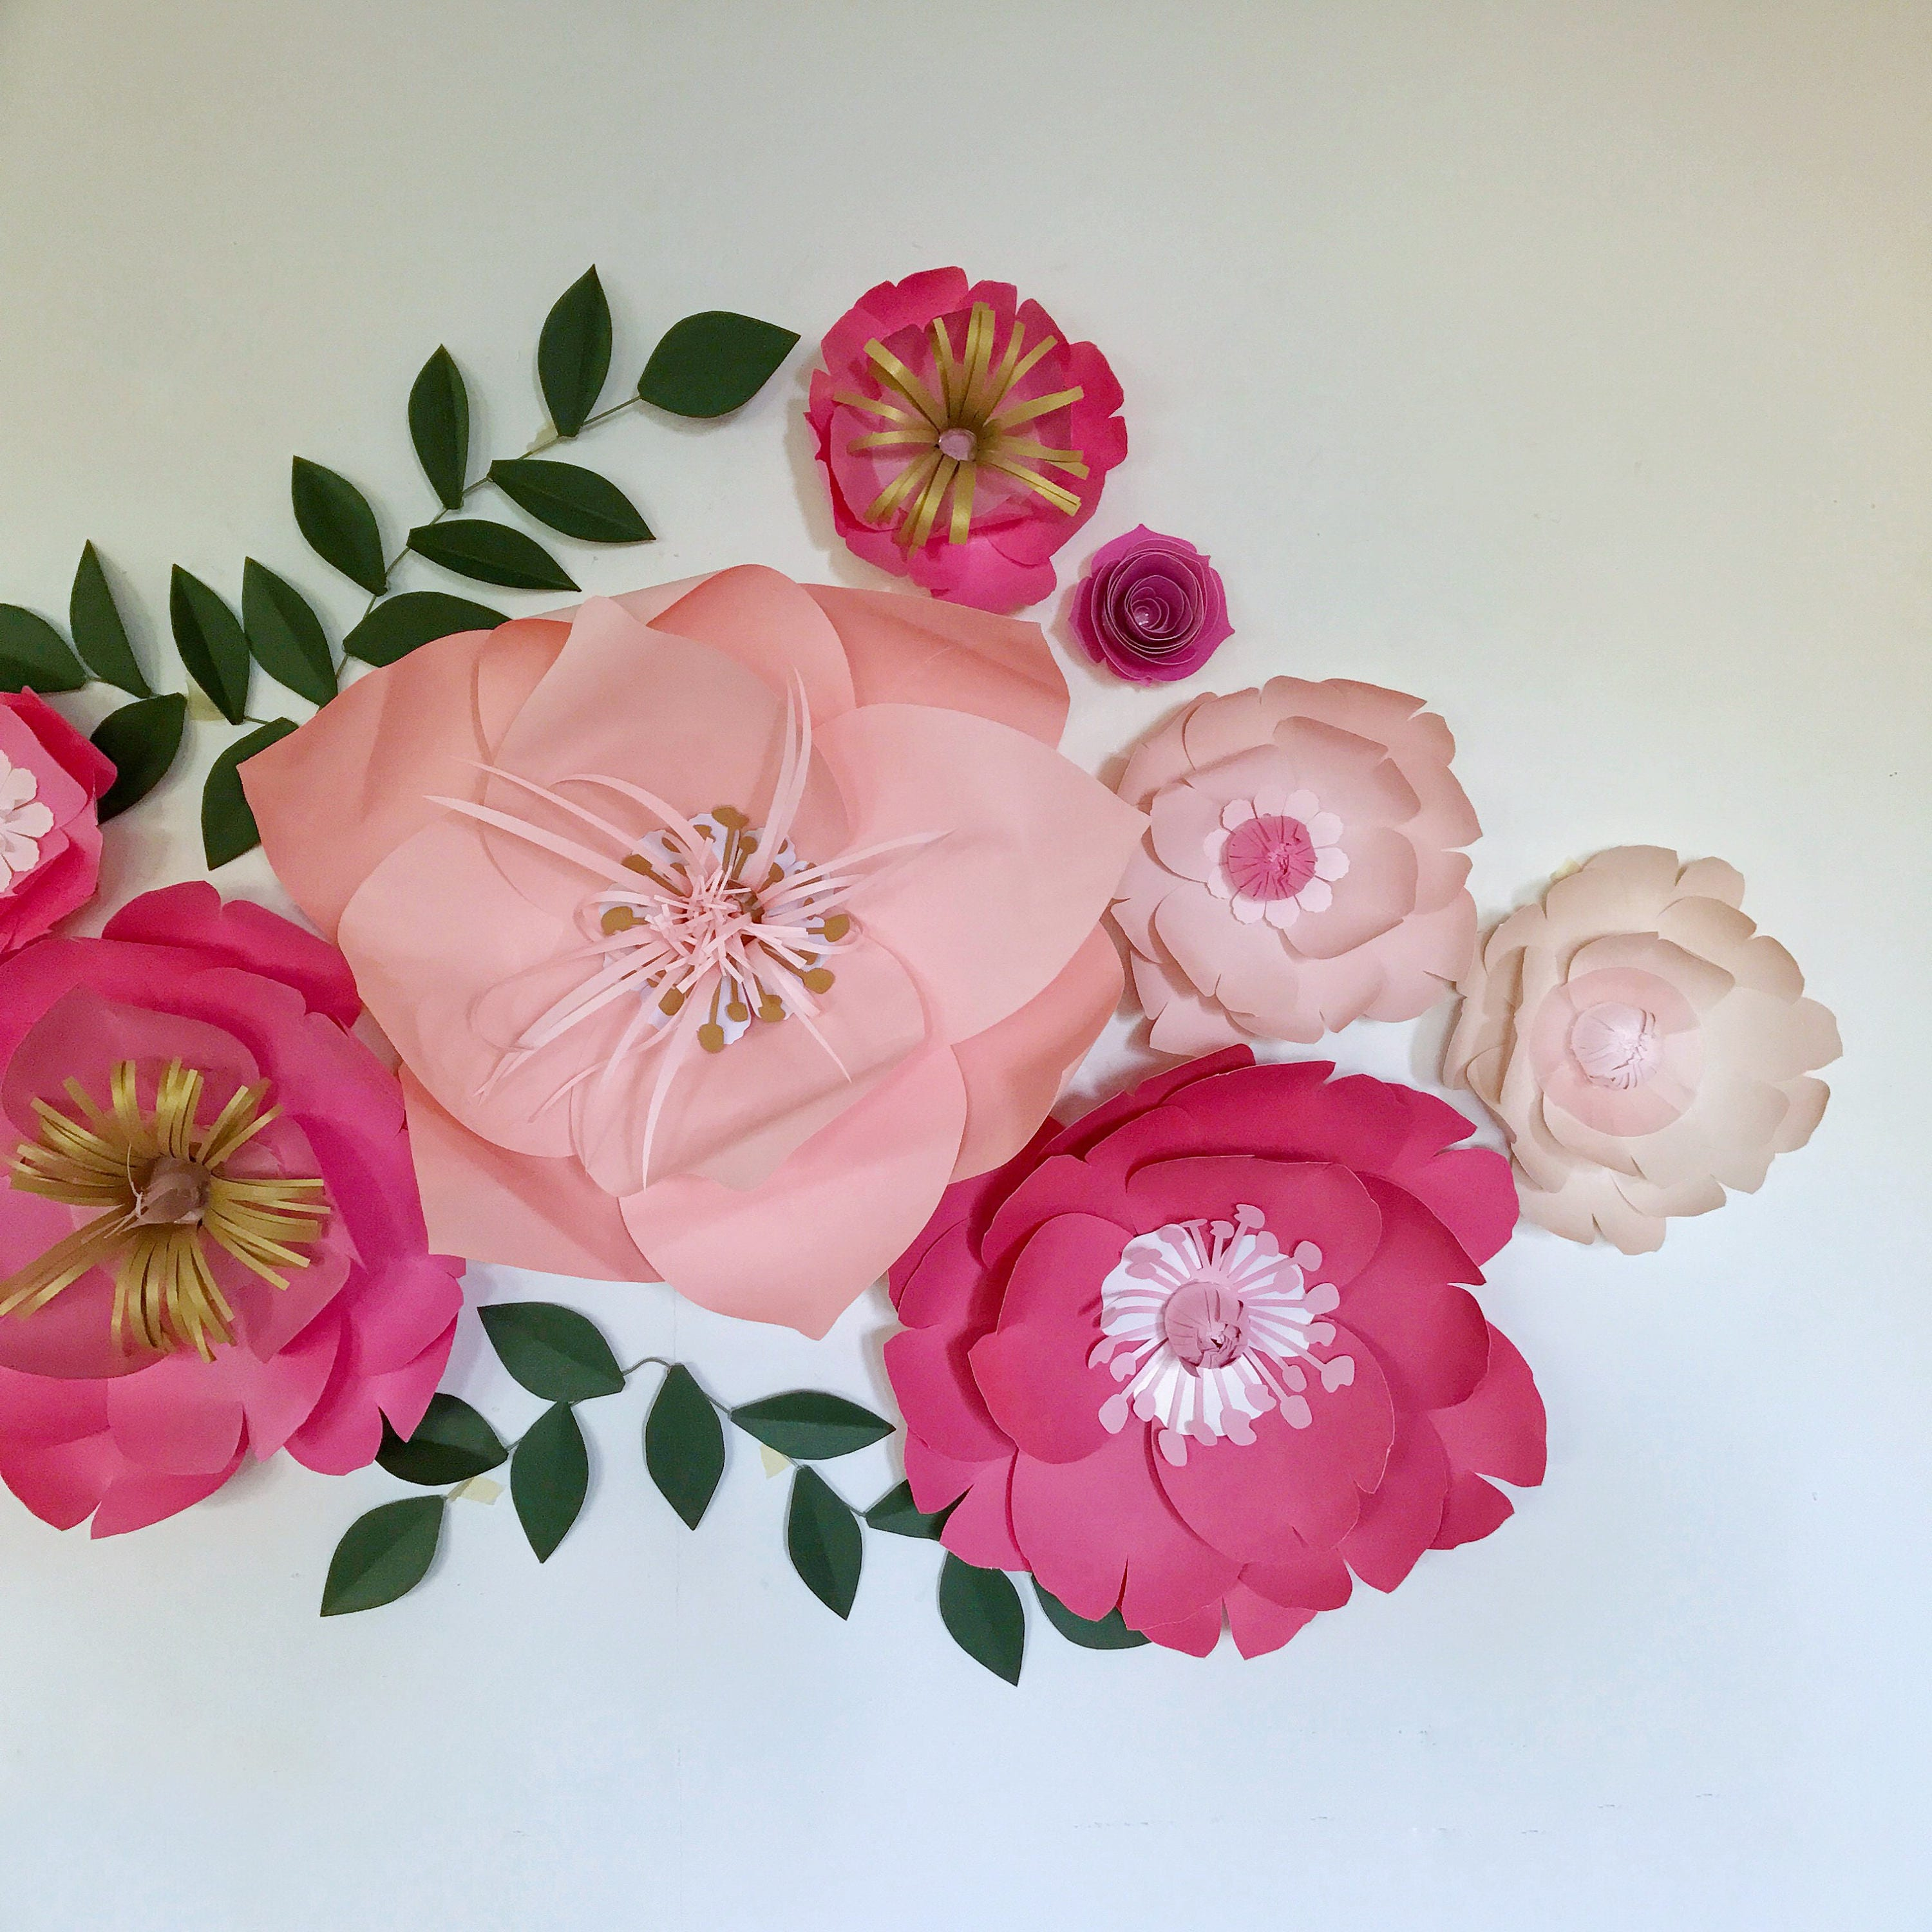 Paper flowers wall decor for a baby girl nursery room wedding gallery photo gallery photo gallery photo gallery photo gallery photo amipublicfo Images